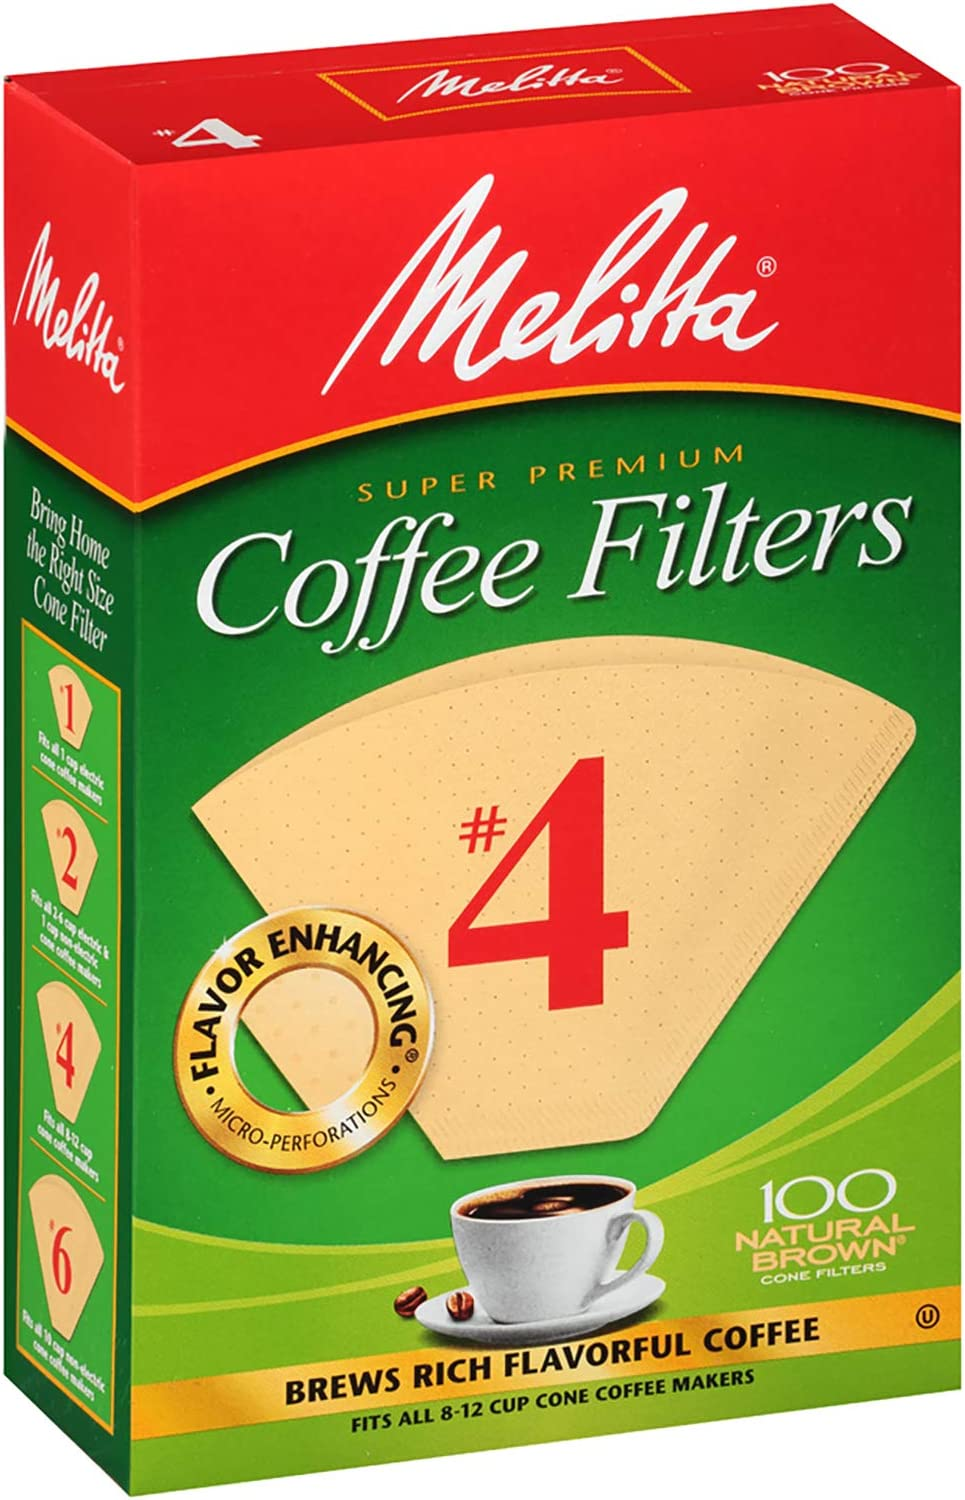 Melitta #4 Super Premium Cone Coffee Filters, Natural Brown, 100 Count (Pack of 6) 71zw6lmfRzL